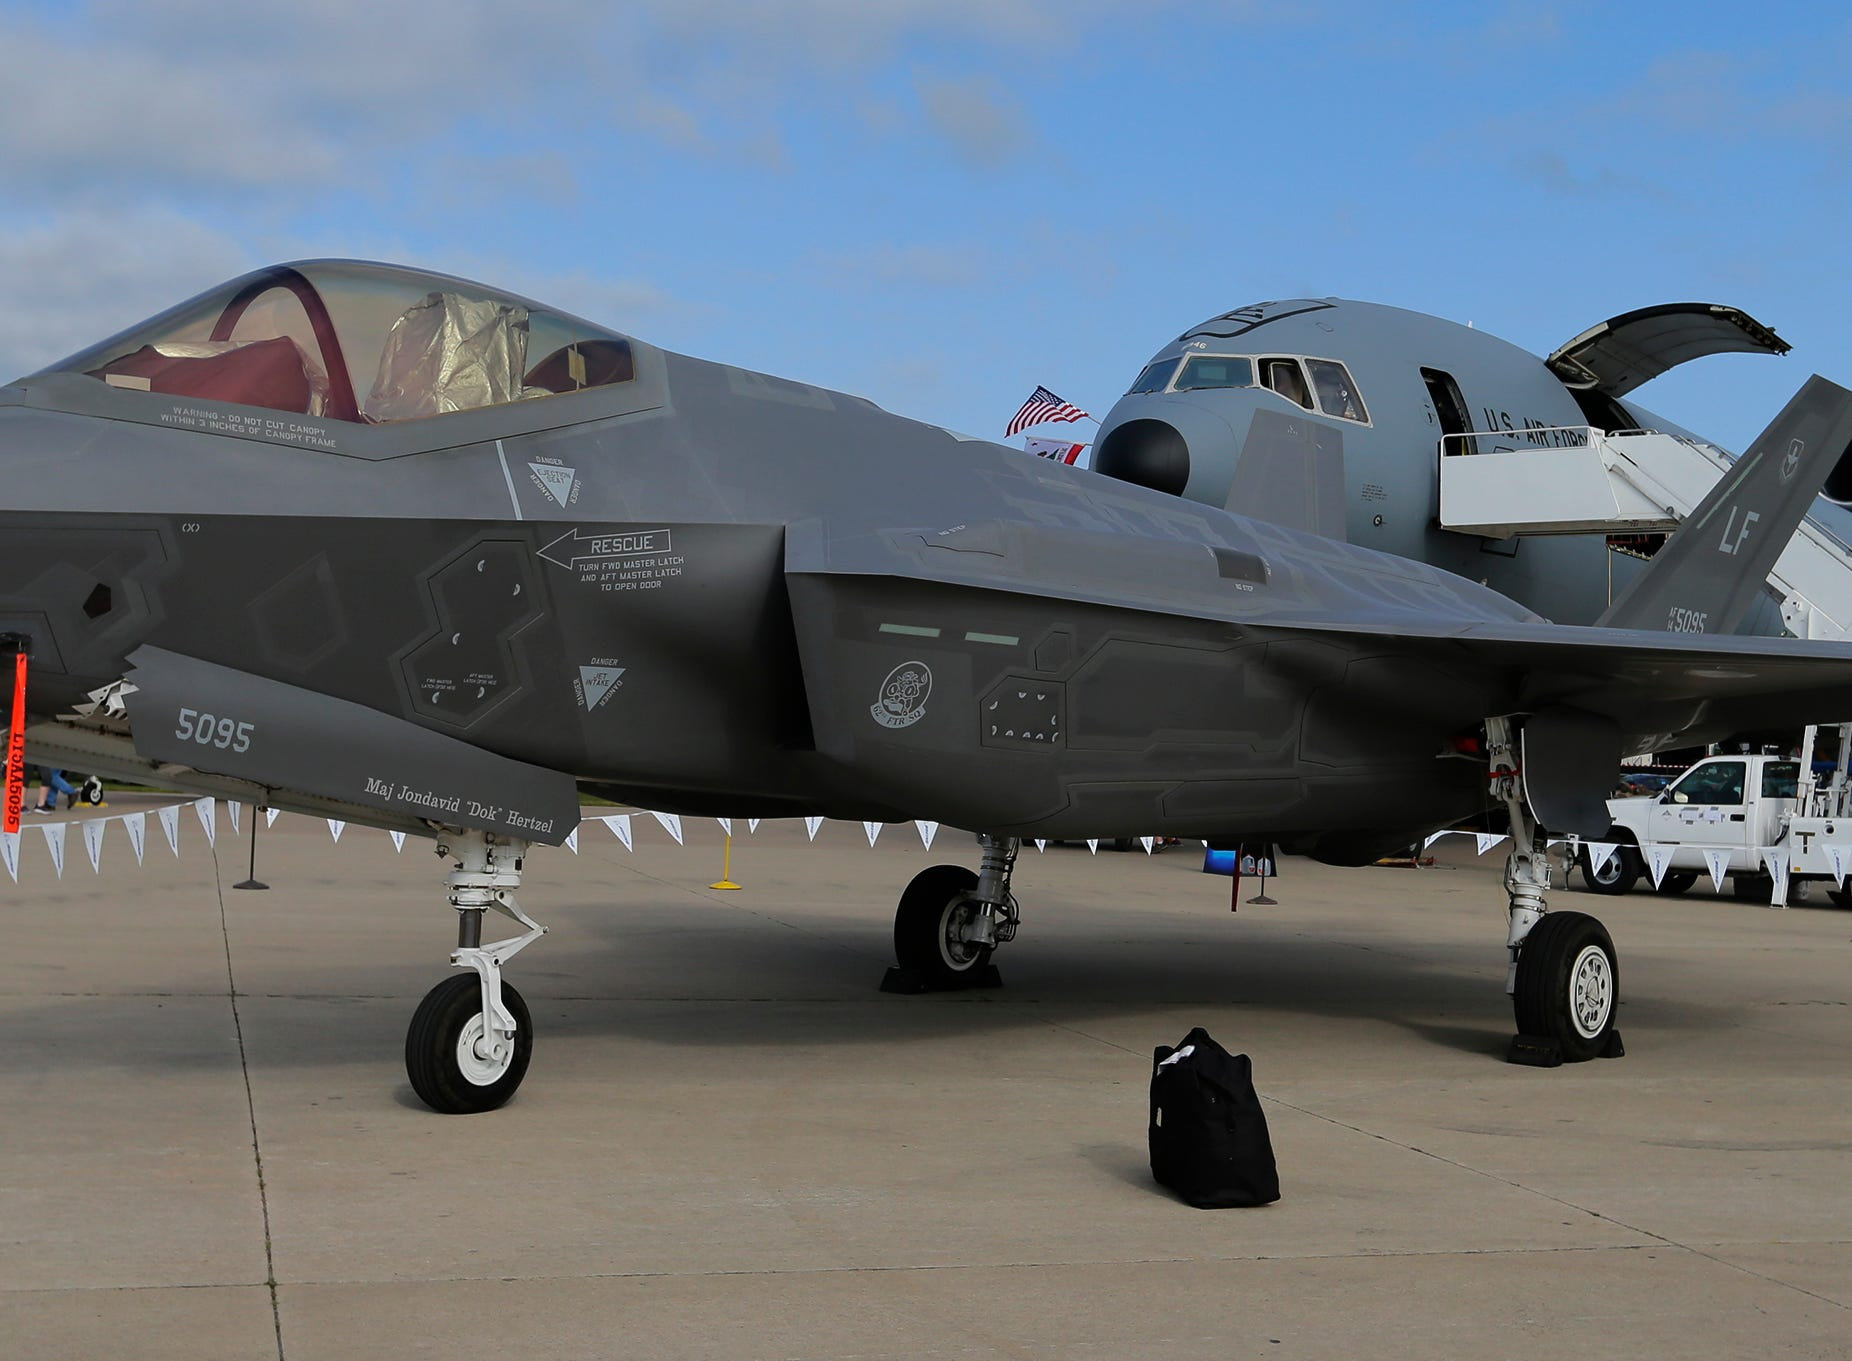 The F-35 made an appearance on Boeing Plaza, Friday, July 27, 2018, in Oshkosh, Wis.  The 66th annual Experimental Aircraft Association Fly-In Convention, AirVenture 2018 draws over 500,000 people and over 10,000 planes from more than 70 nations annually to the area.  The convention runs through July 29.Joe Sienkiewicz/USA Today NETWORK-Wisconsin